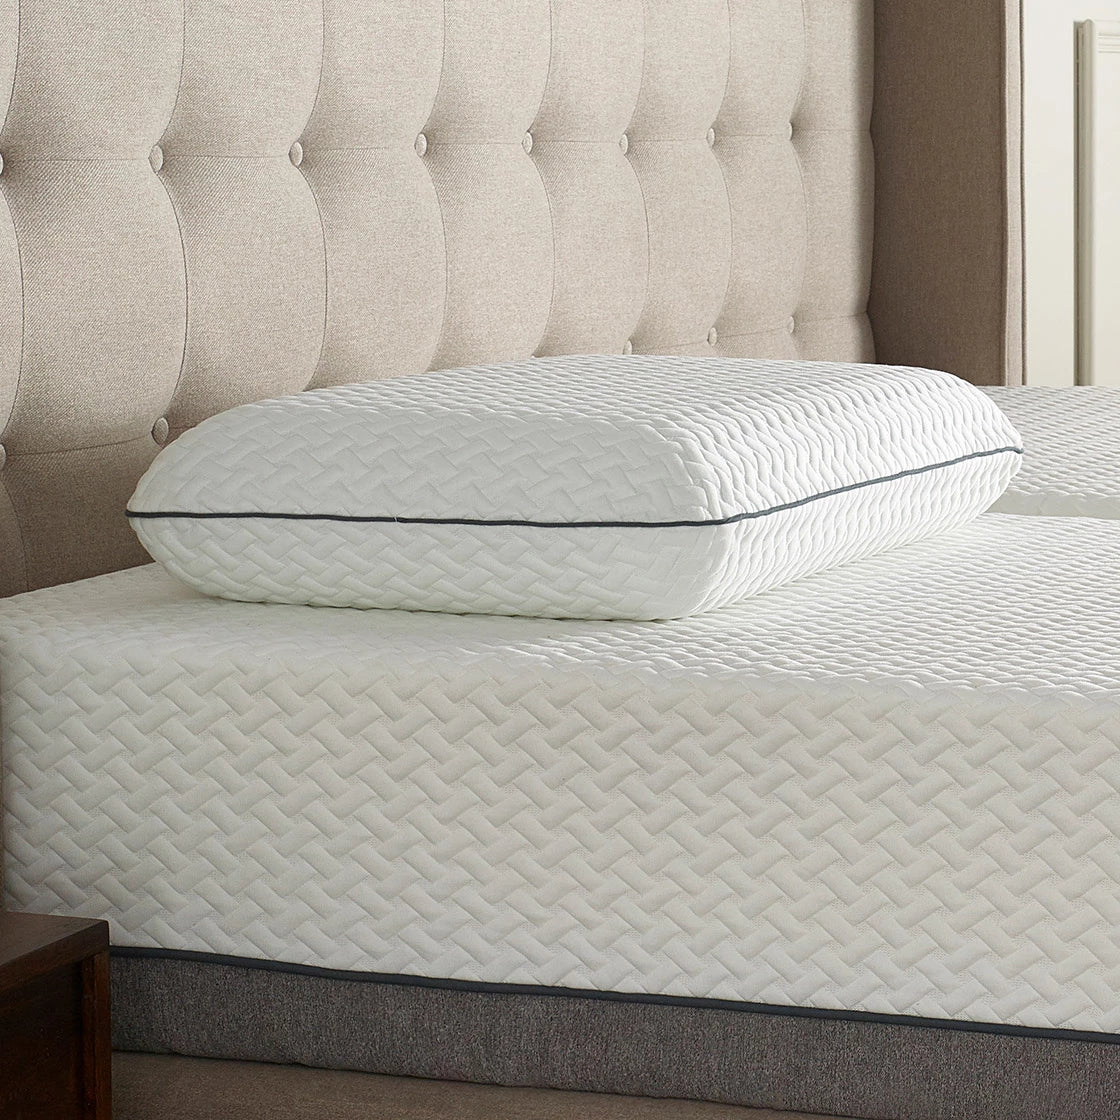 Cloud Pillow on Adjustable Bed and Mattress